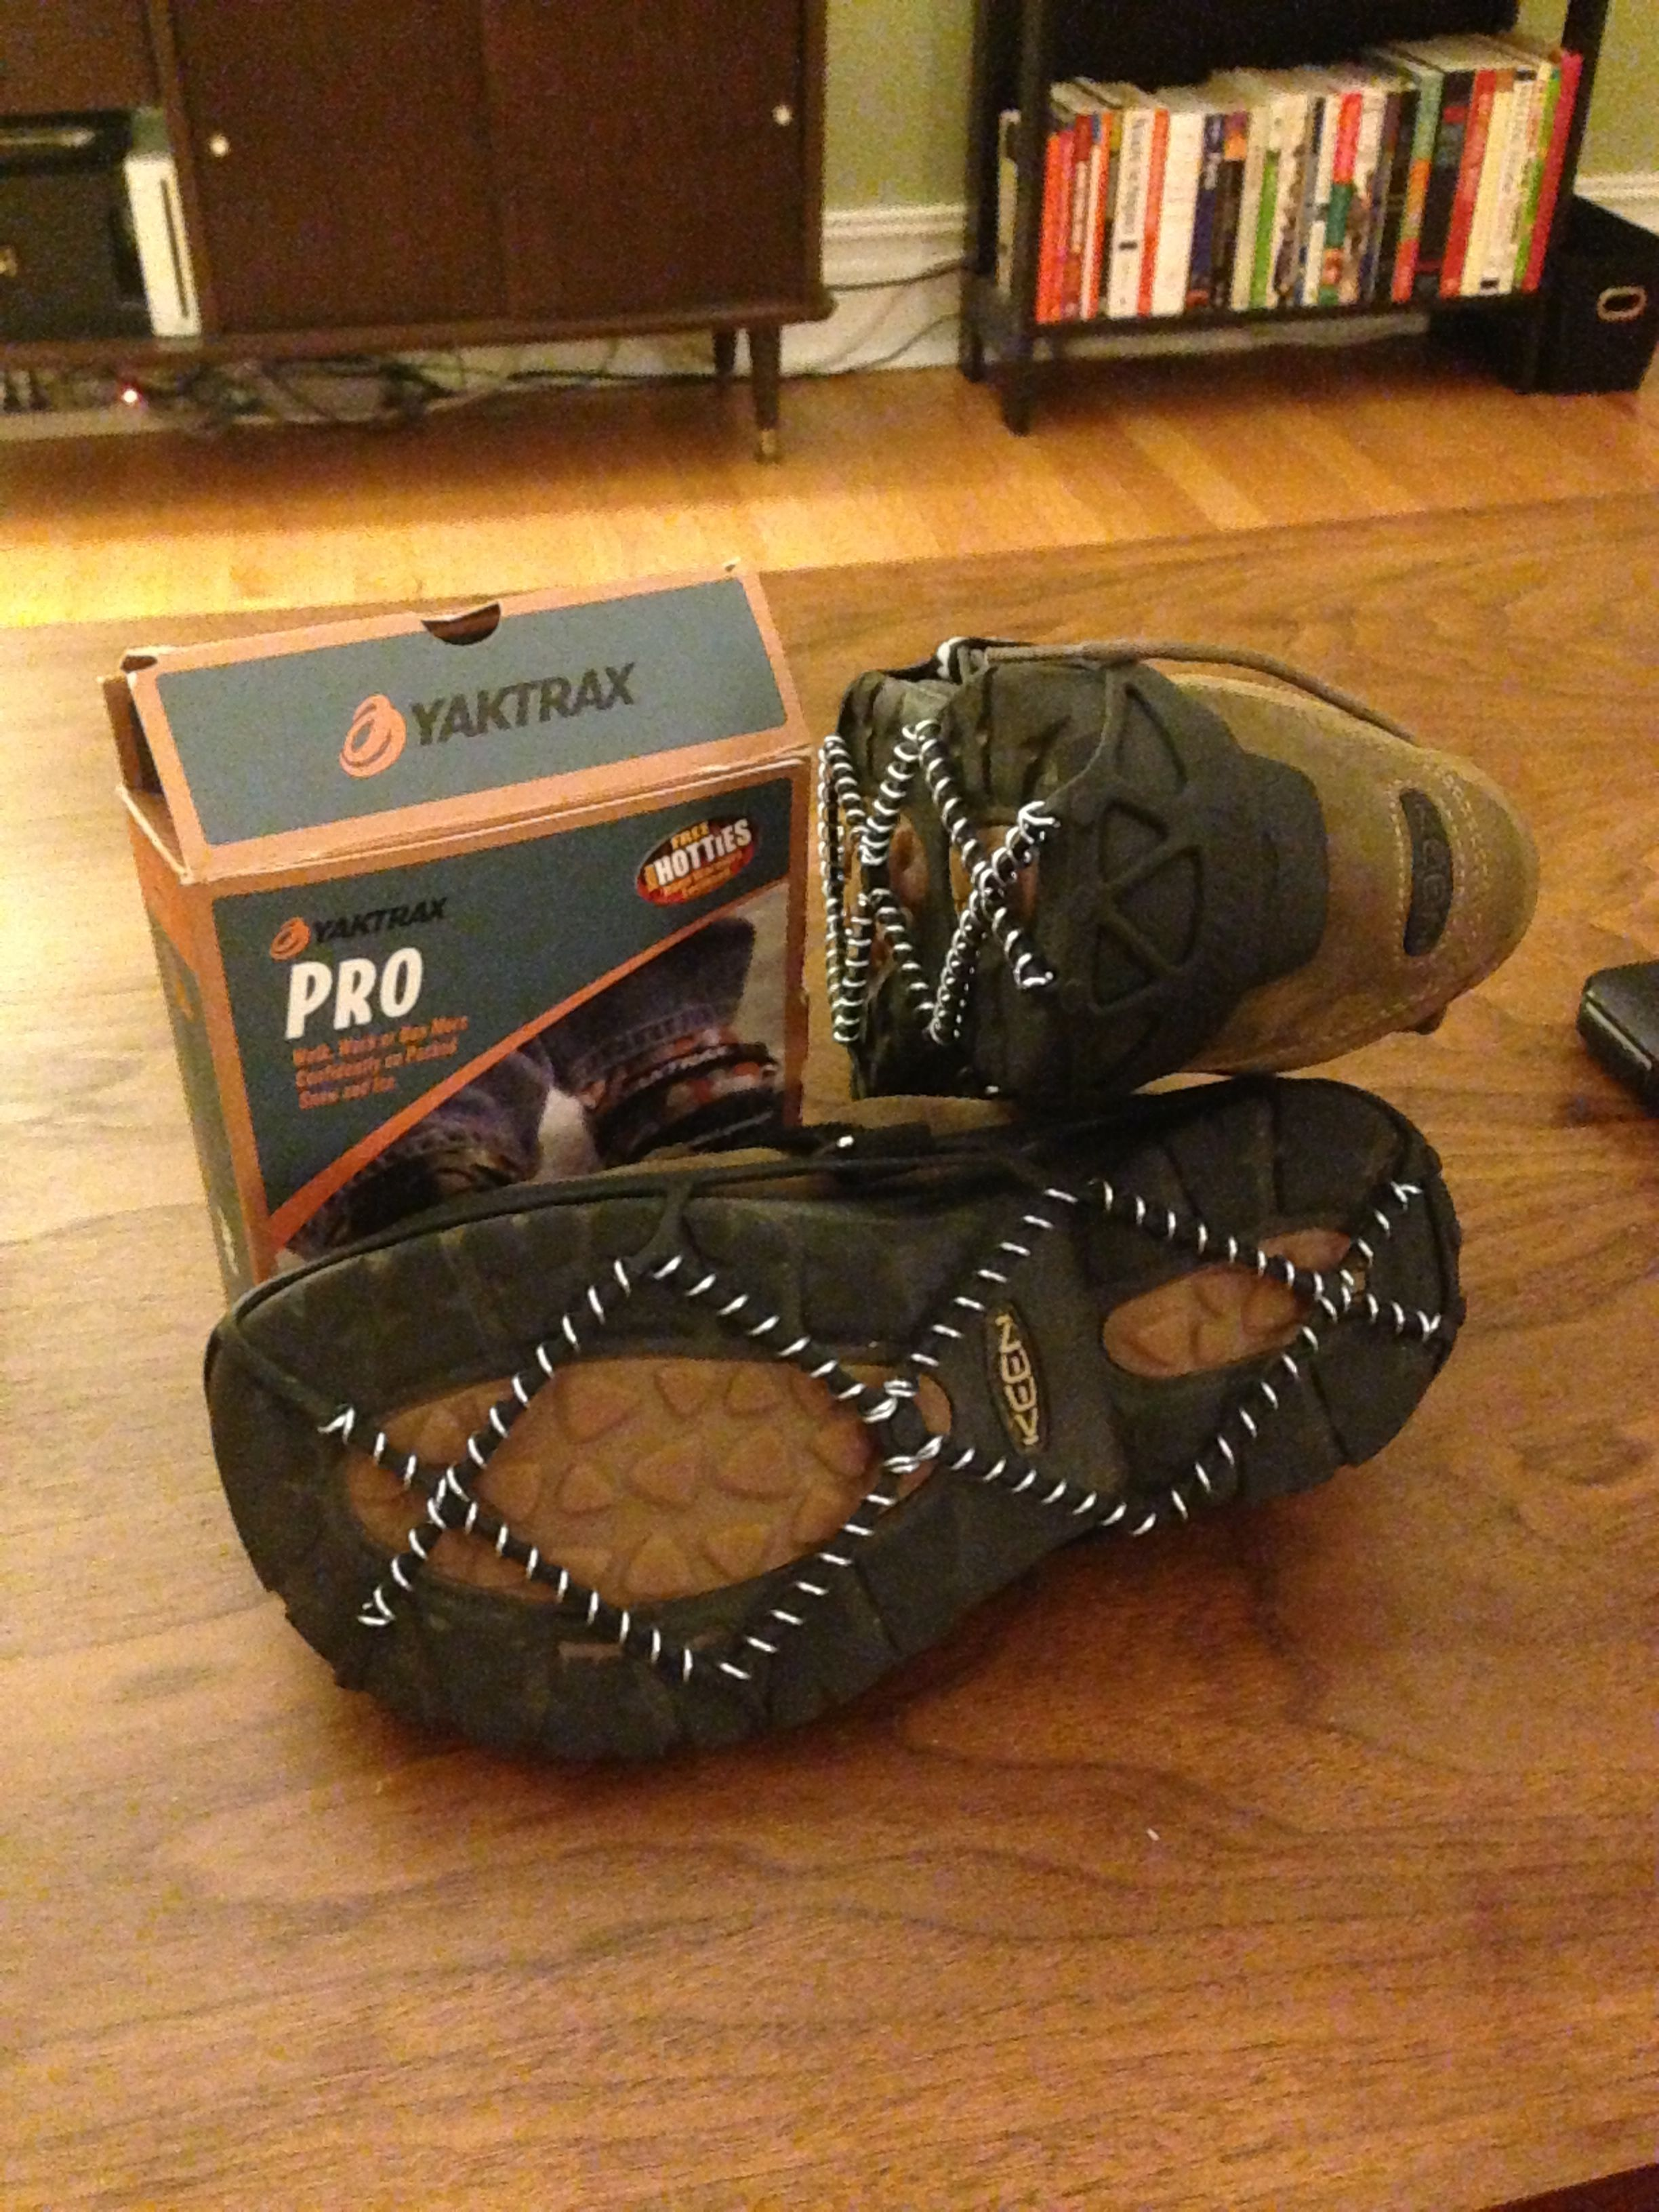 Yaktrax Pro essential for hiking in Glacier National Park in July.